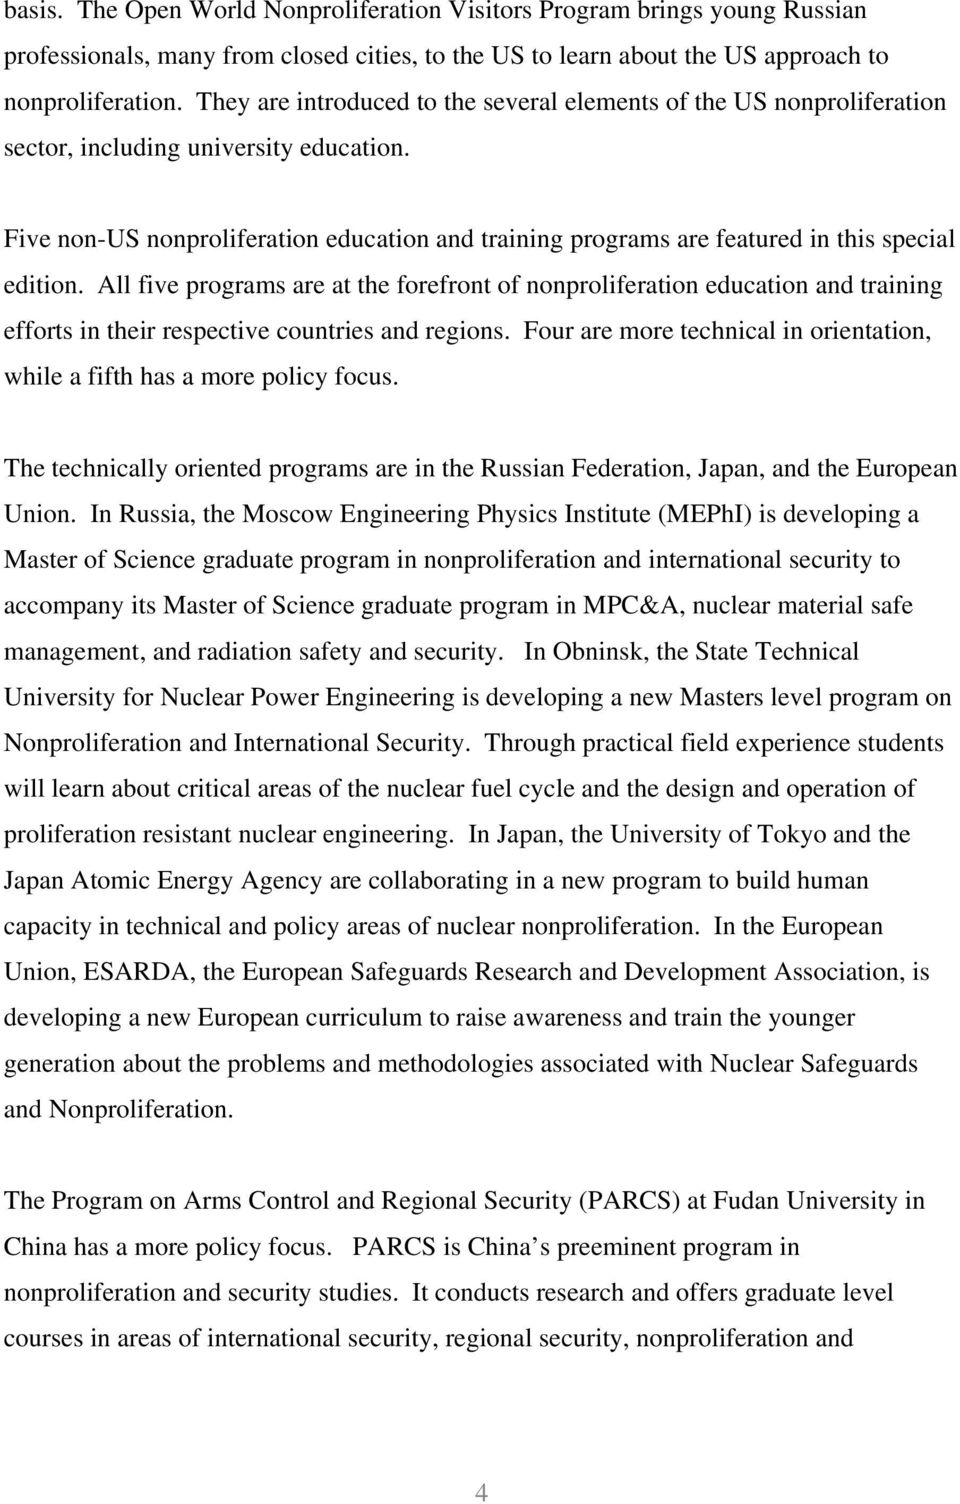 Five non-us nonproliferation education and training programs are featured in this special edition.